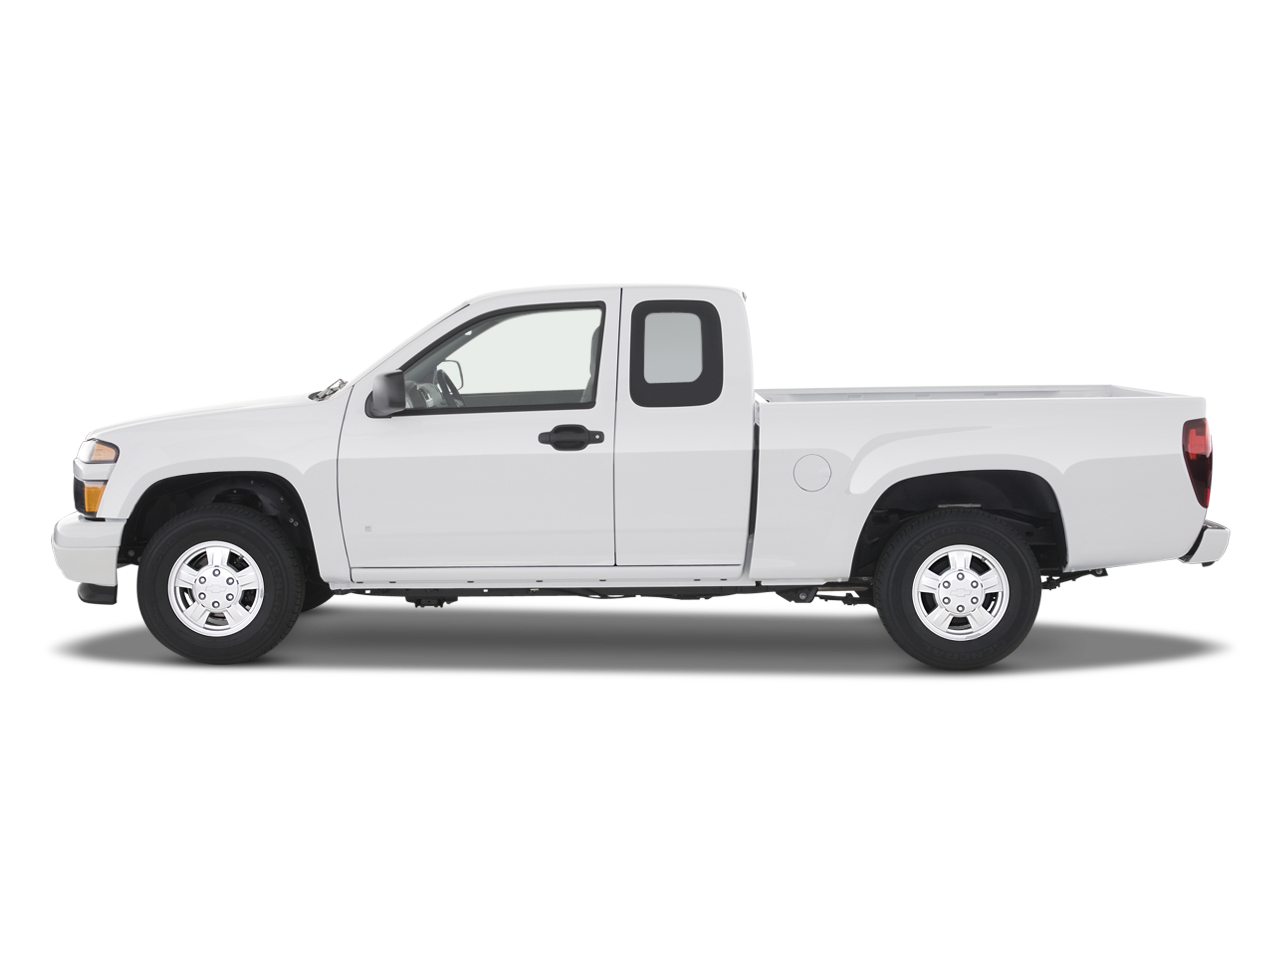 2009 Chevy Colorado and 2009 GMC Canyon - First Drive Midsize Pickup ...